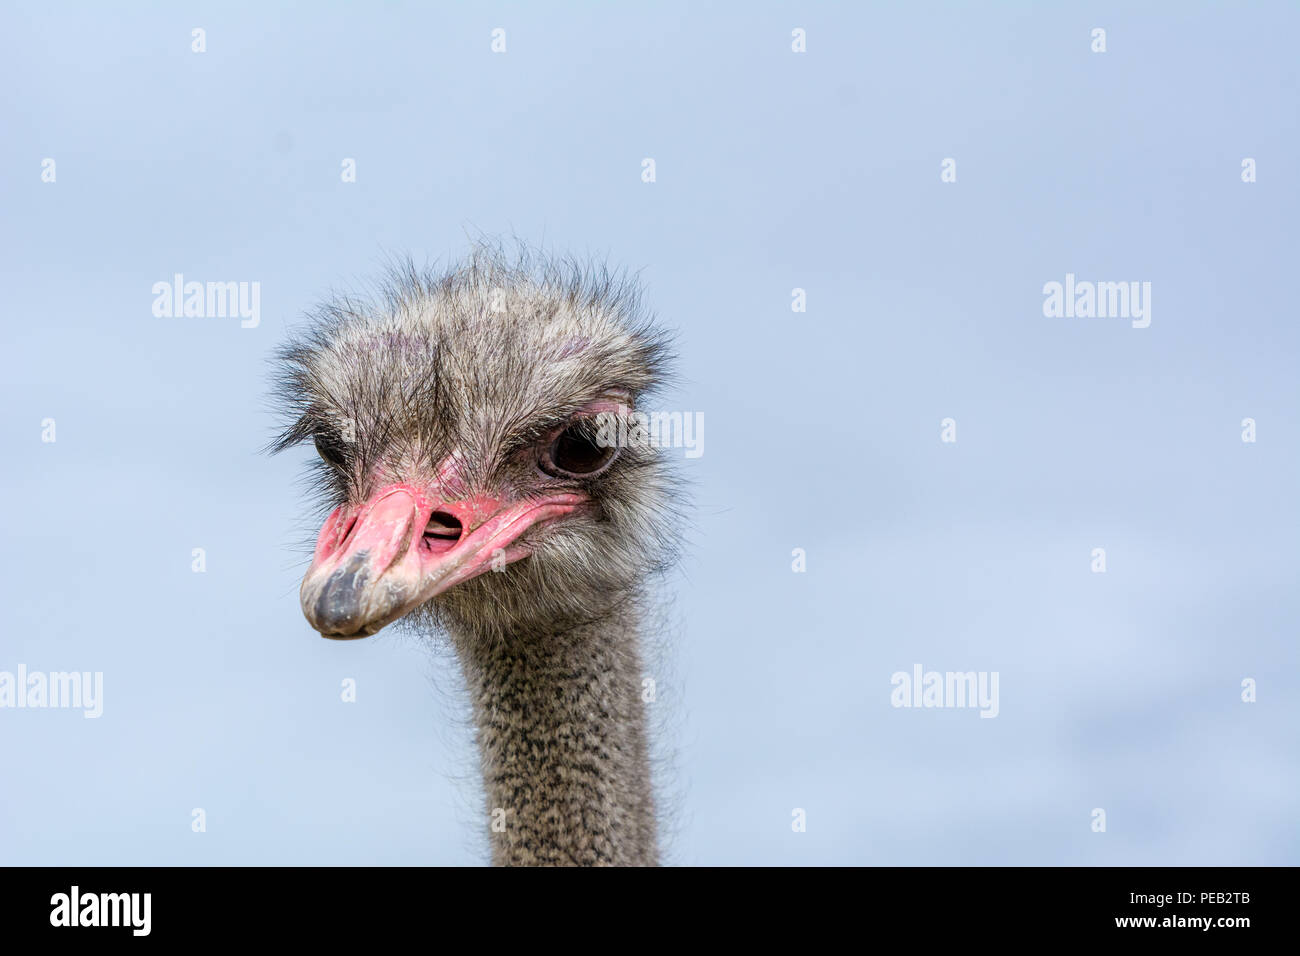 The head of an ostrich closeup on a blue background. - Stock Image